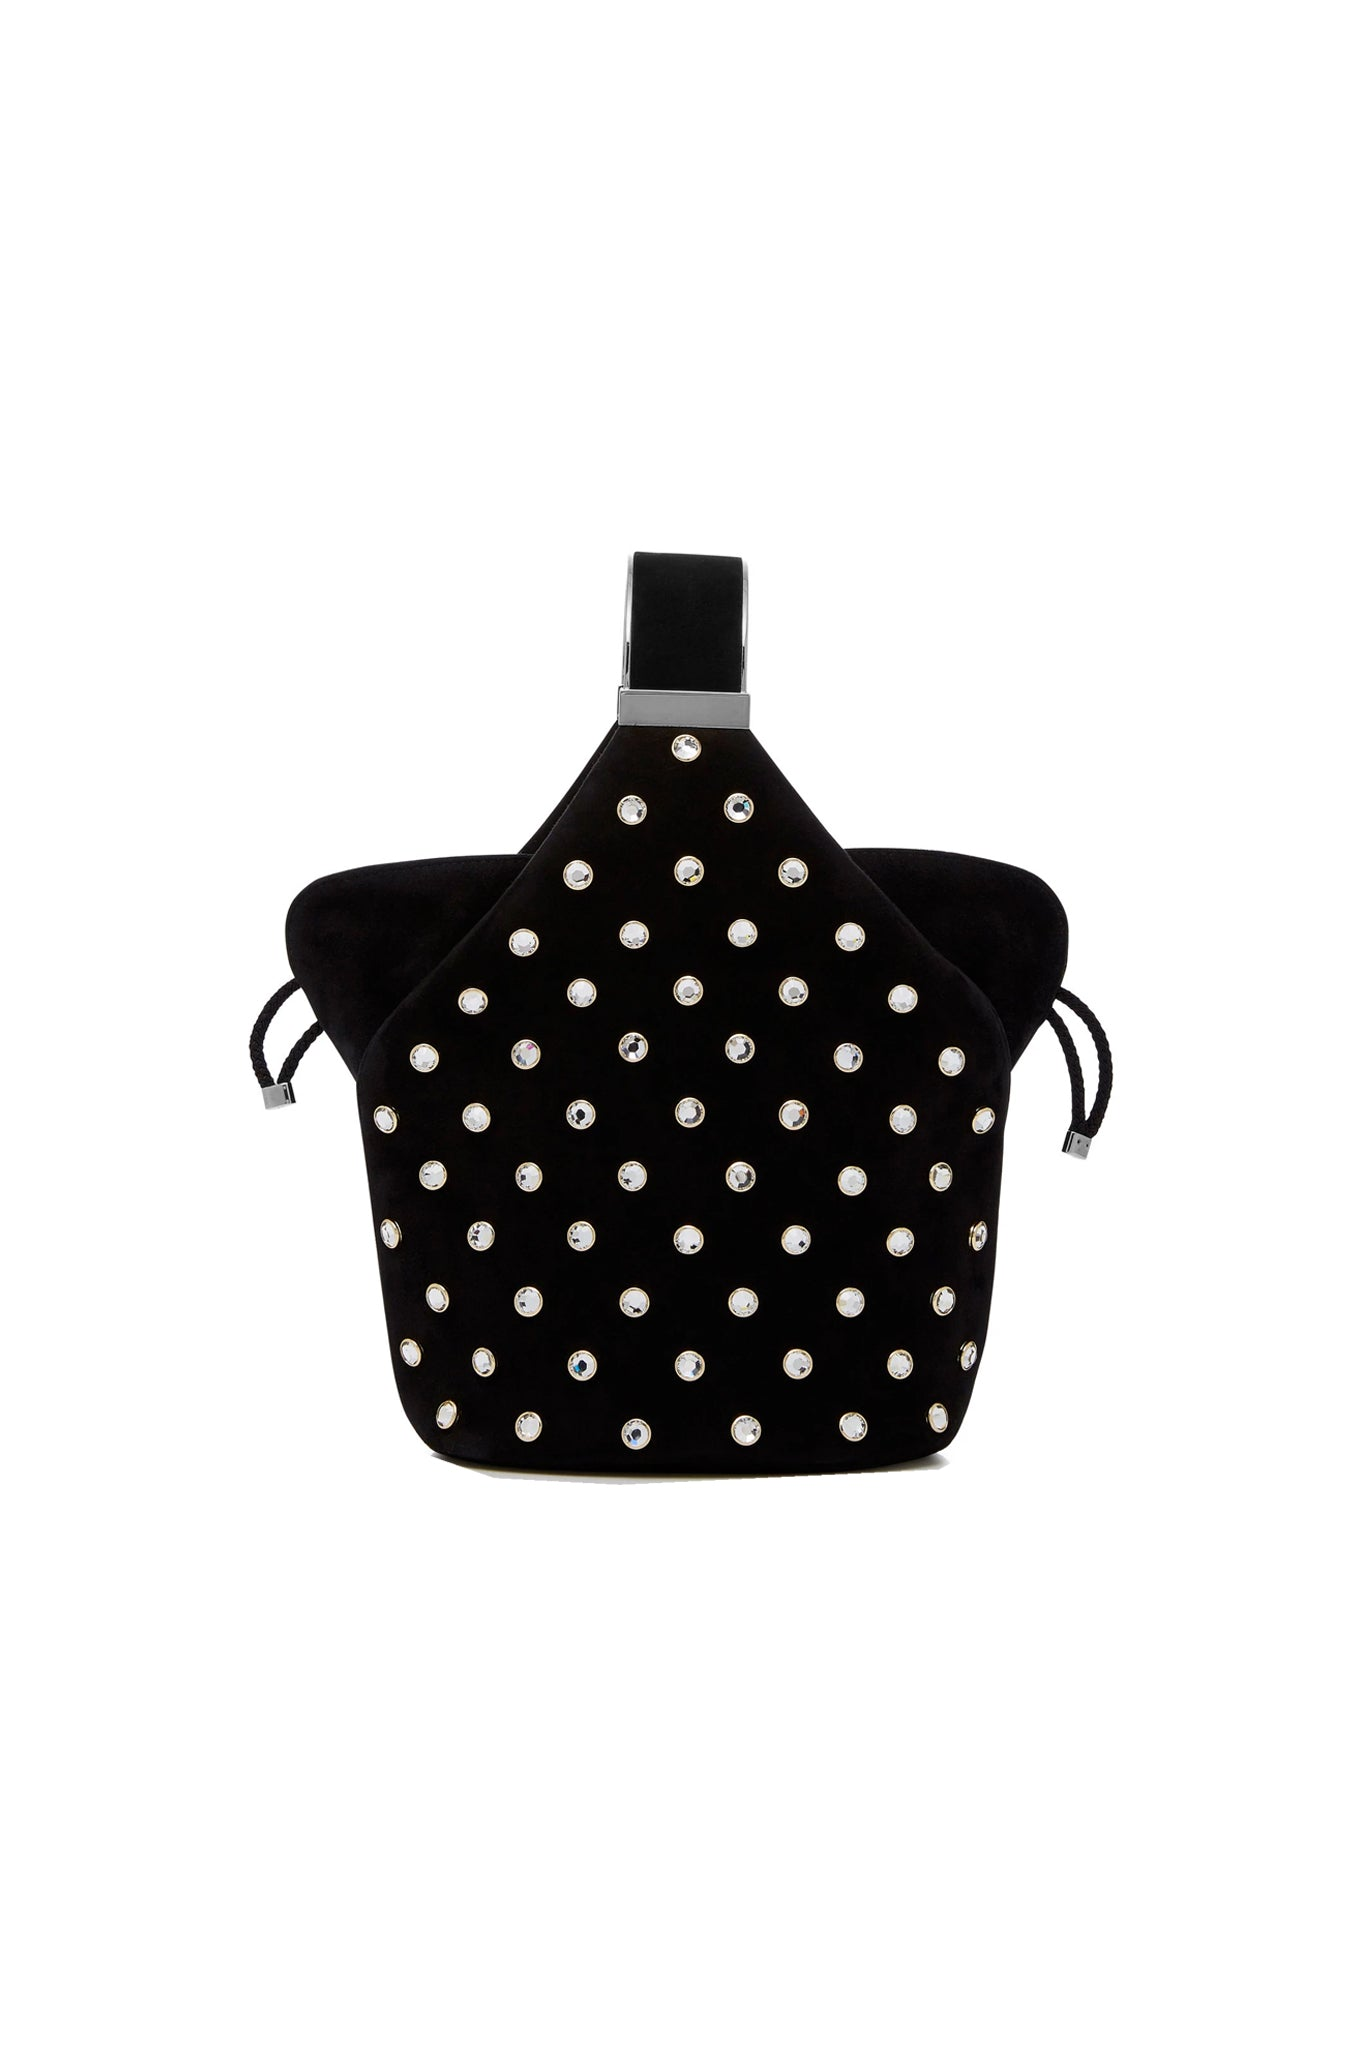 Kit Bracelet Bag in Crystal Studded Black Suede